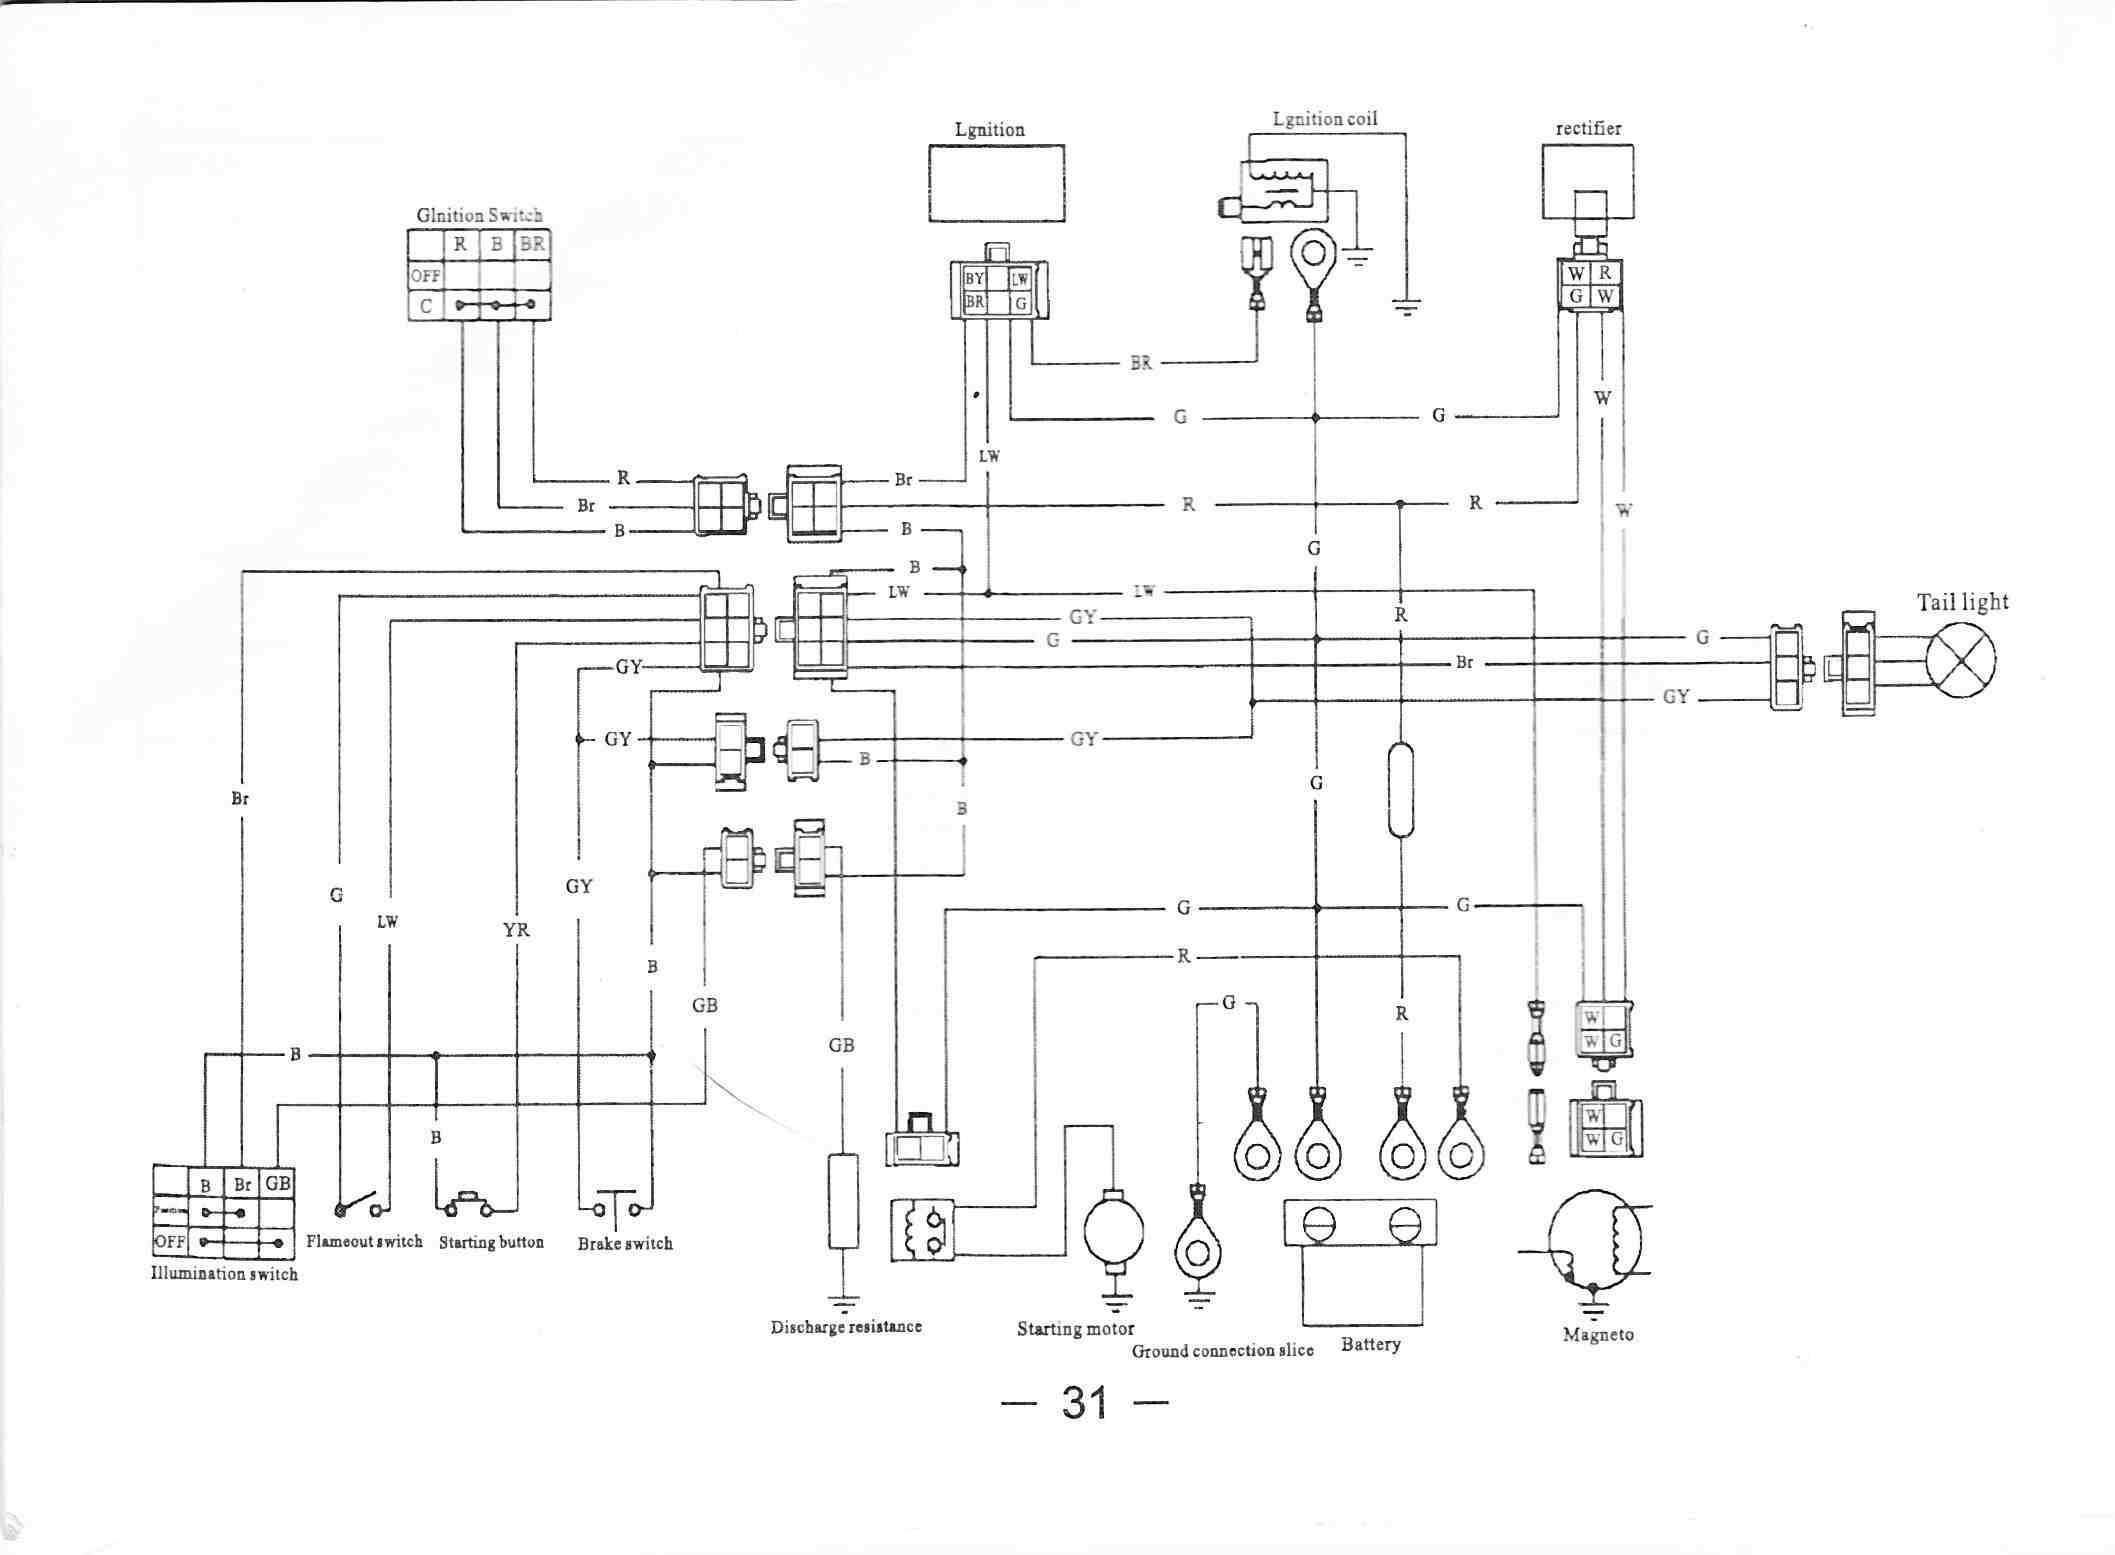 [DIAGRAM_38IU]  Chinese 250 Atv Wiring Diagram Diagram Base Website Wiring Diagram -  VENNDIAGRAMANSWERS.NINTENDO-MEYF.IT | 250cc Chinese Atv Wiring Schematic |  | Diagram Base Website Full Edition - nintendo-meyf.it